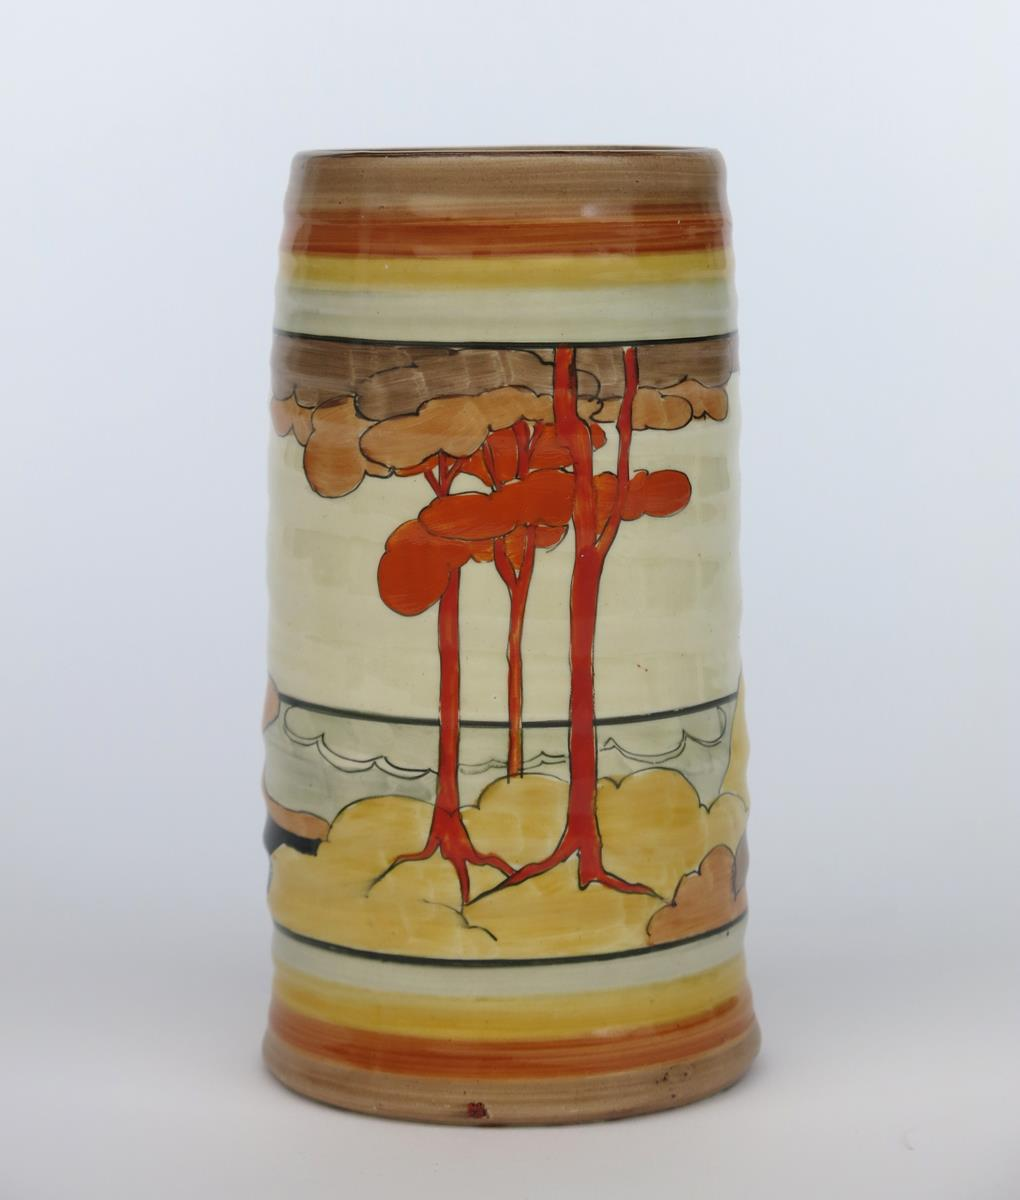 'Coral Firs' a Clarice Cliff Bizarre 566 vase, painted in colours between grey, yellow and brown